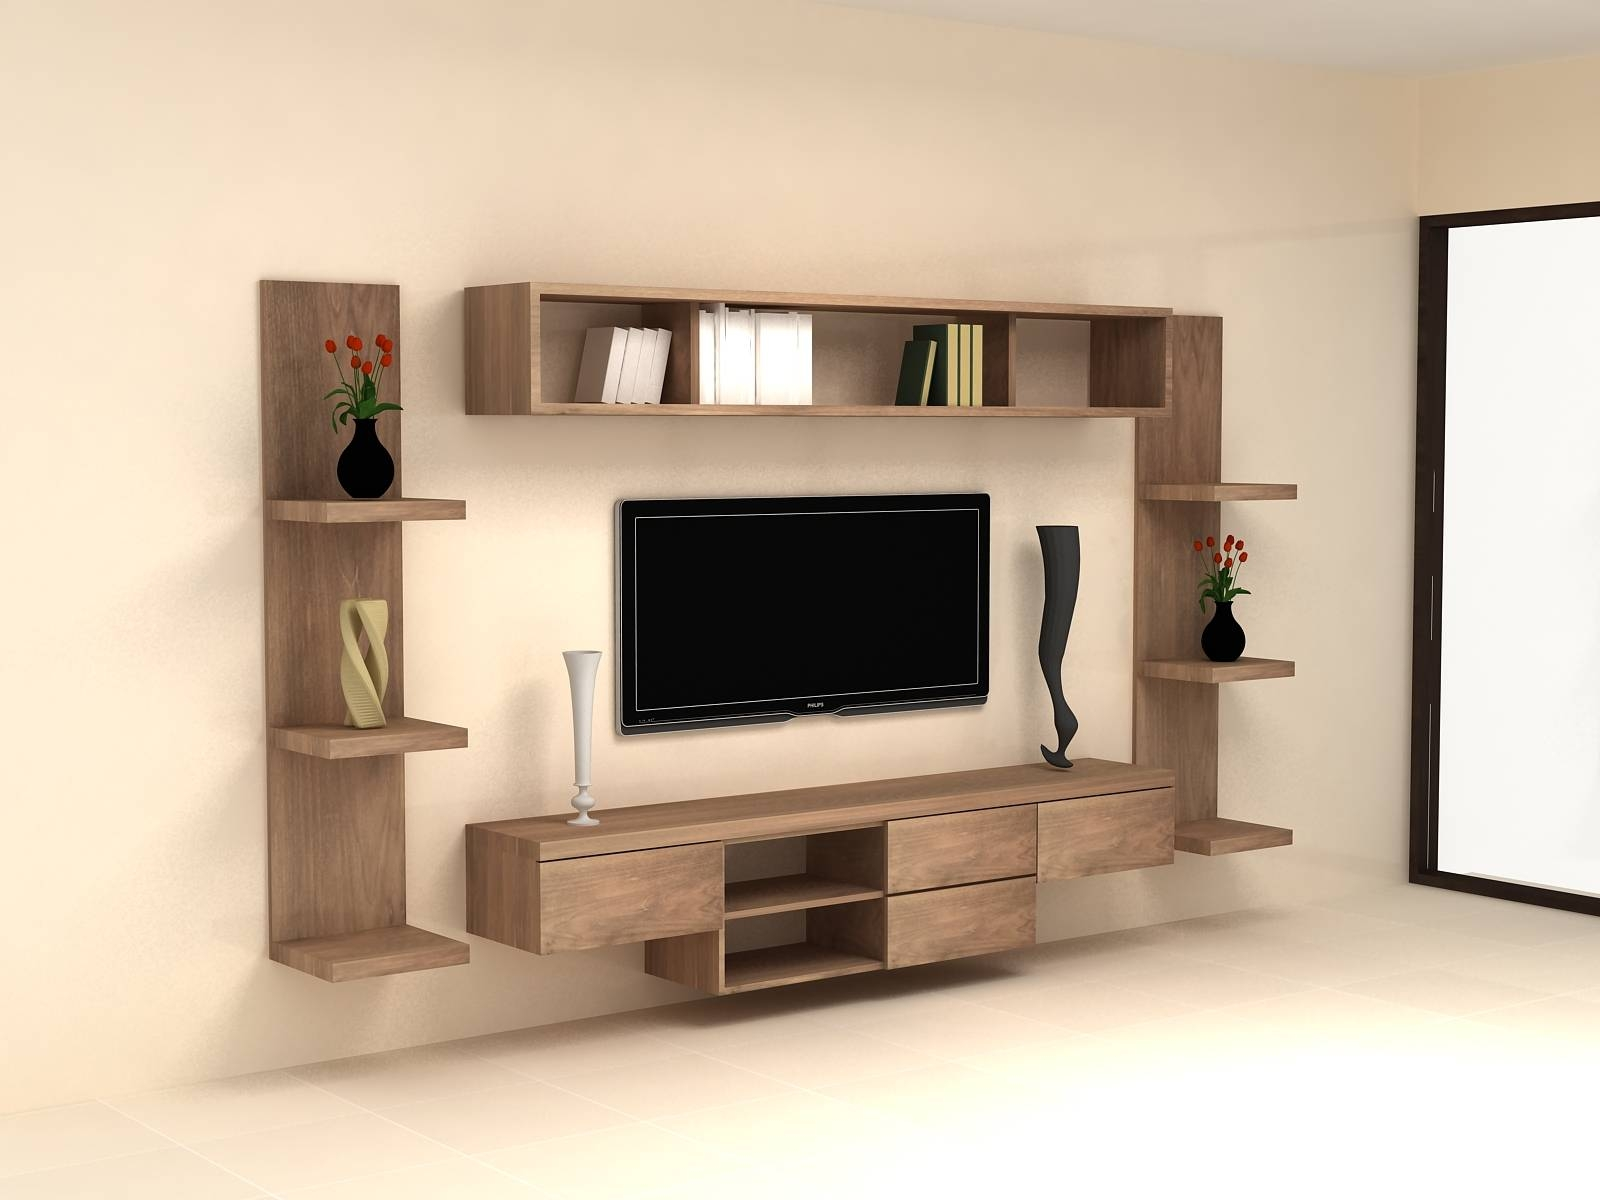 Wall Units. Amusing Tv Cabinet On Wall: Interesting-Tv-Cabinet-On in Tv Cabinets And Wall Units (Image 12 of 15)